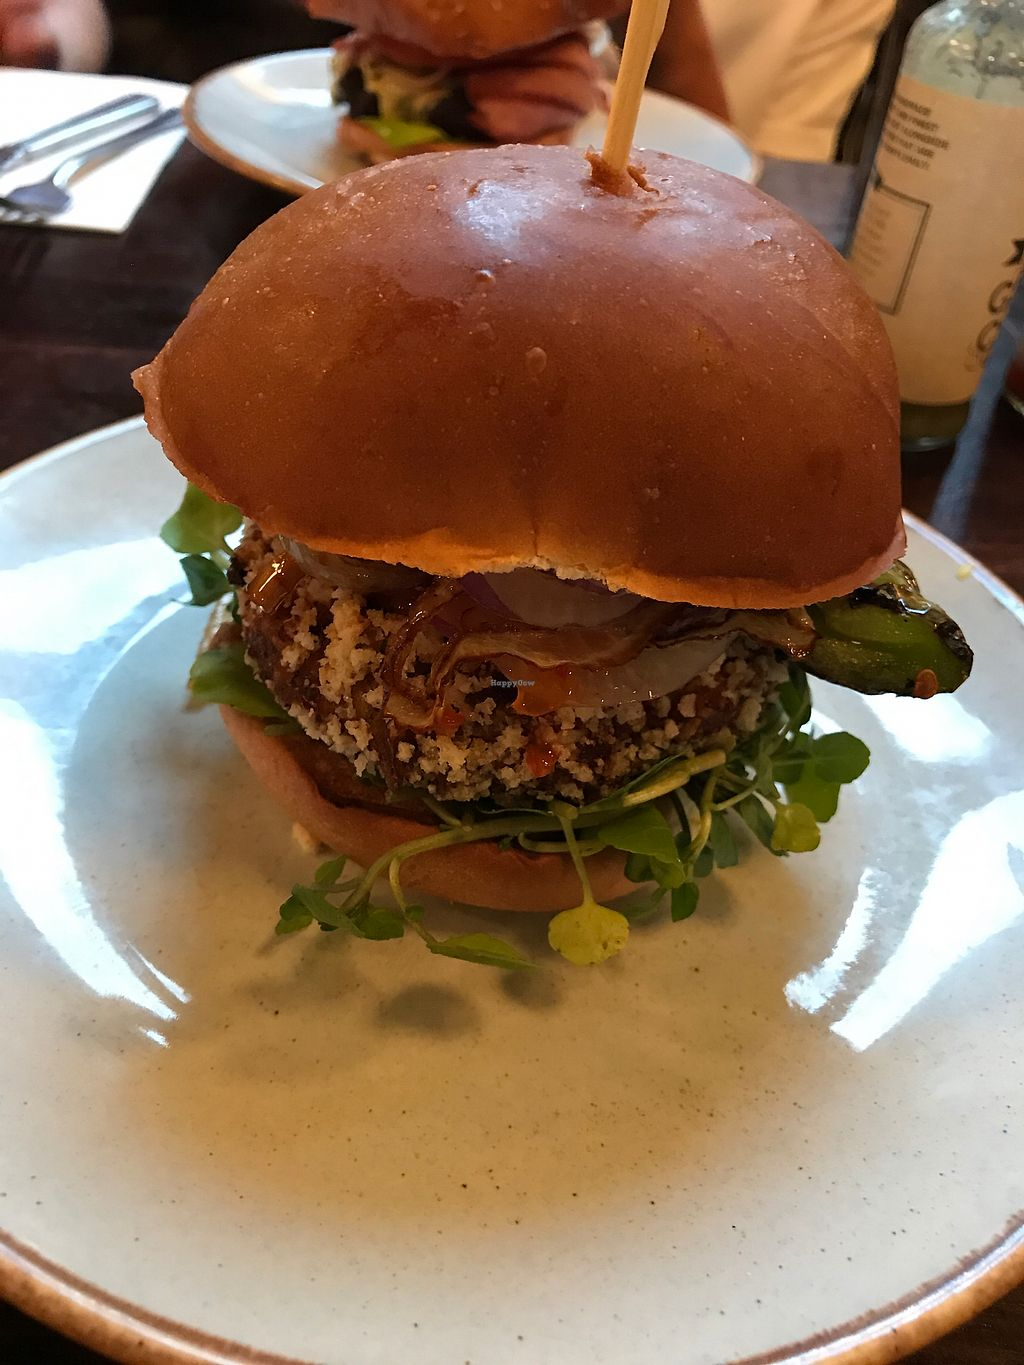 """Photo of Handmade Burger Co.  by <a href=""""/members/profile/PhilWheeler"""">PhilWheeler</a> <br/>Thai Vegan Burger ?? <br/> August 22, 2017  - <a href='/contact/abuse/image/71627/295905'>Report</a>"""